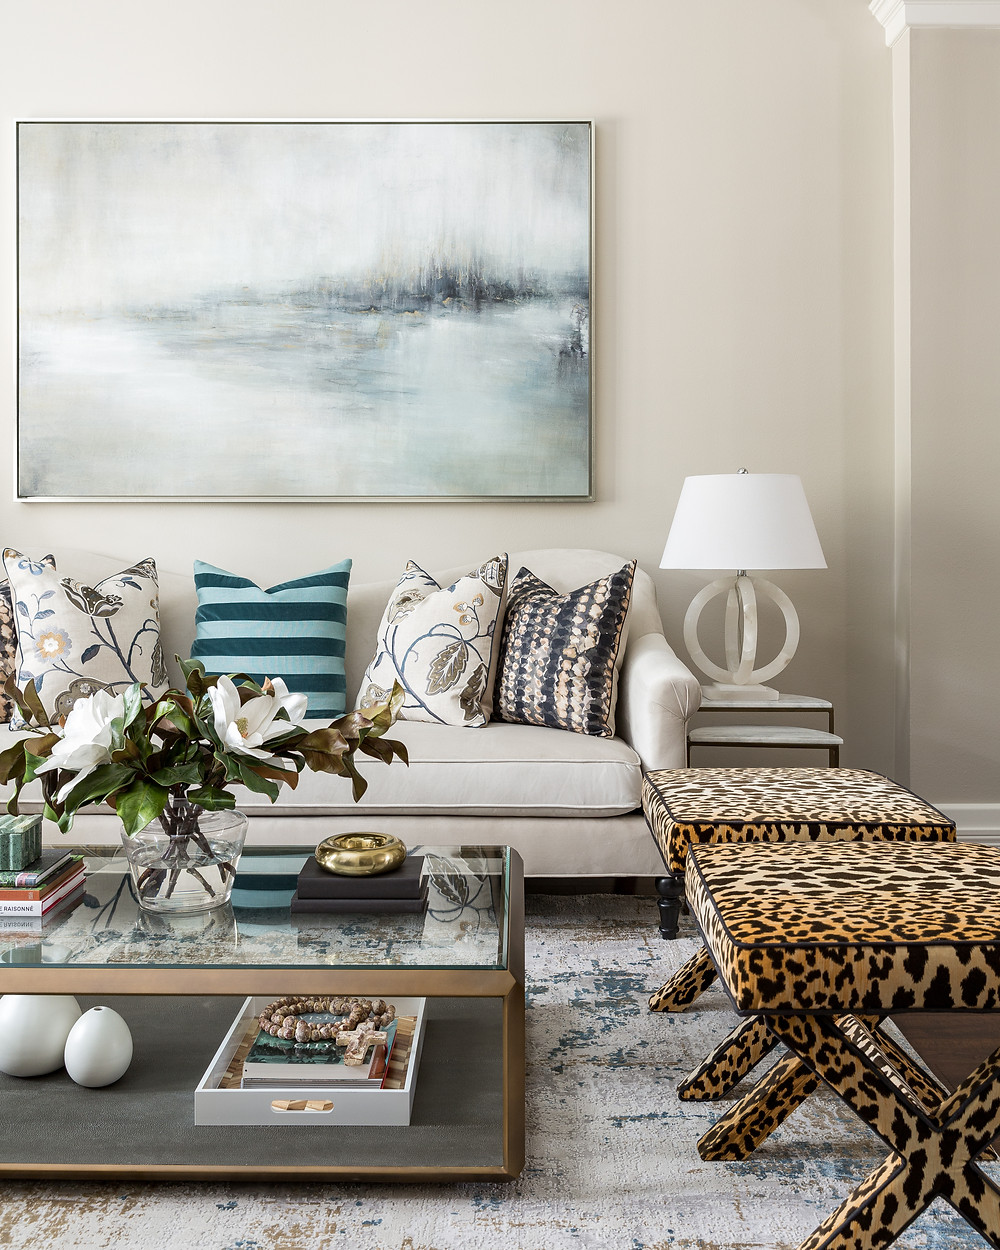 Serene Living Room Designed Vy Veronica Solomon With A New Traditional Style Sofa, Large Scale Landscape Art, A Great Pattern Mix With Cheetah Print On Ottomans